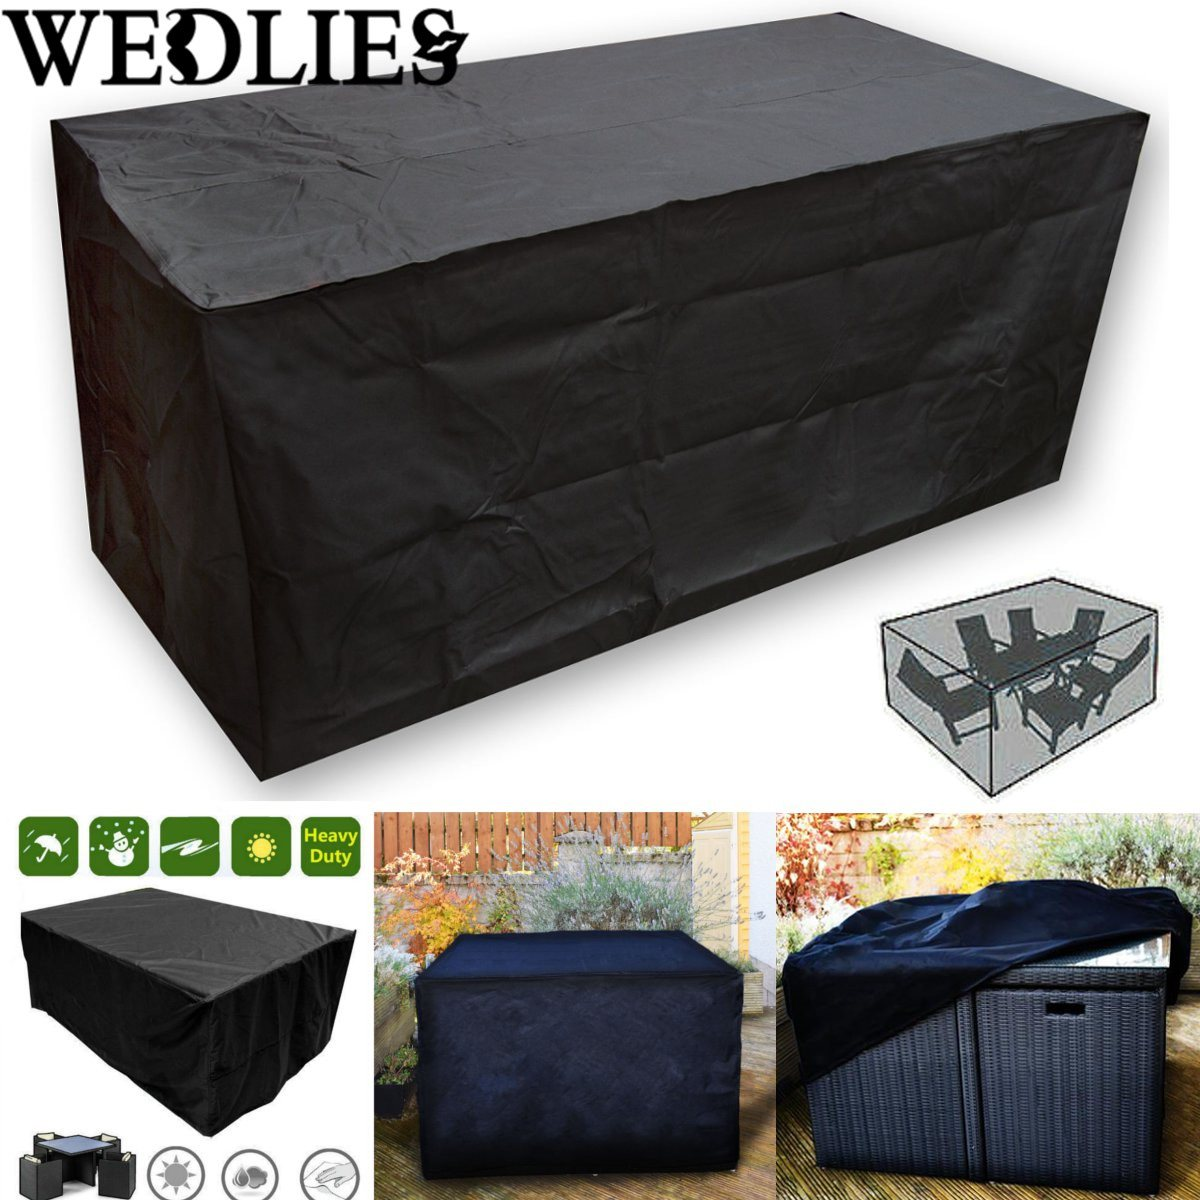 Waterproof Outdoor Patio Furniture Set Cover 205X104X71cm Garden Table Protective Cover Dustproof Table Cloth Home Textile(China (Mainland))